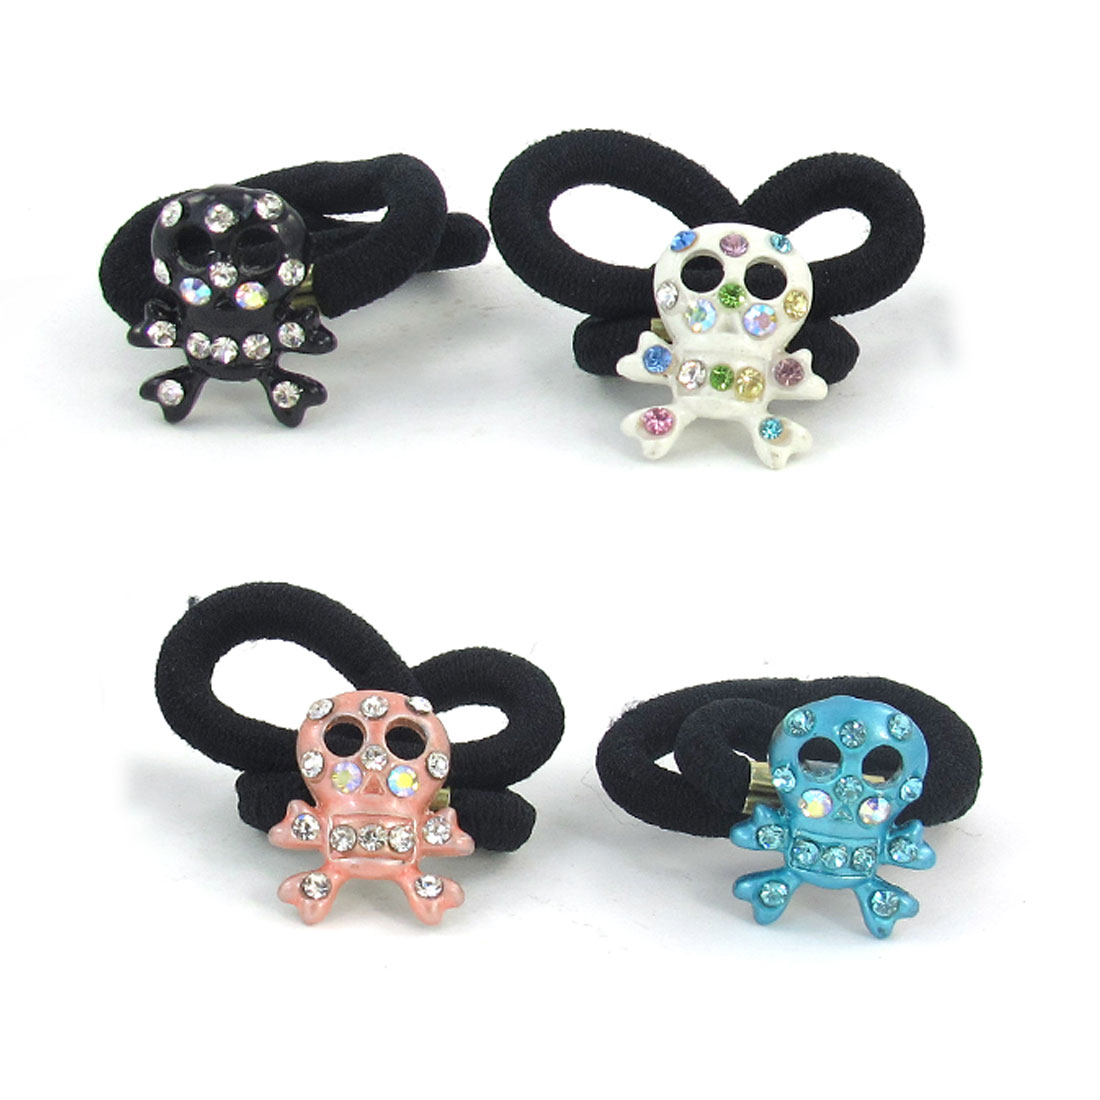 4 Pcs Kids Colored Rhinestone Inlaid Skull Head Decor Elastic Rubber Hair Band Tie